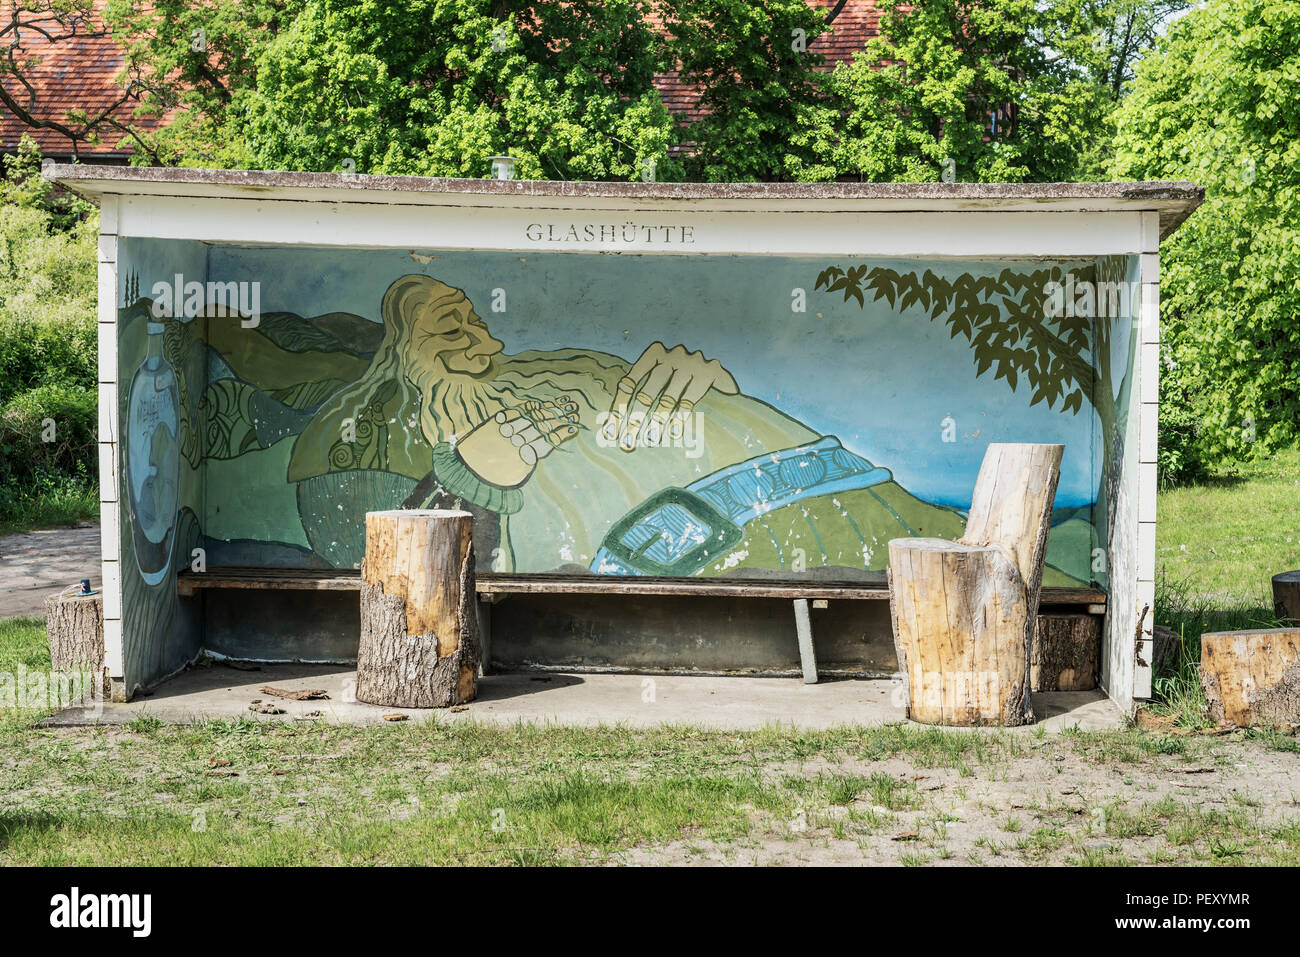 Bus stop shelter in Glashuette, city Baruth / Mark, district Teltow-Flaeming, Brandenburg, Germany, Europe Stock Photo